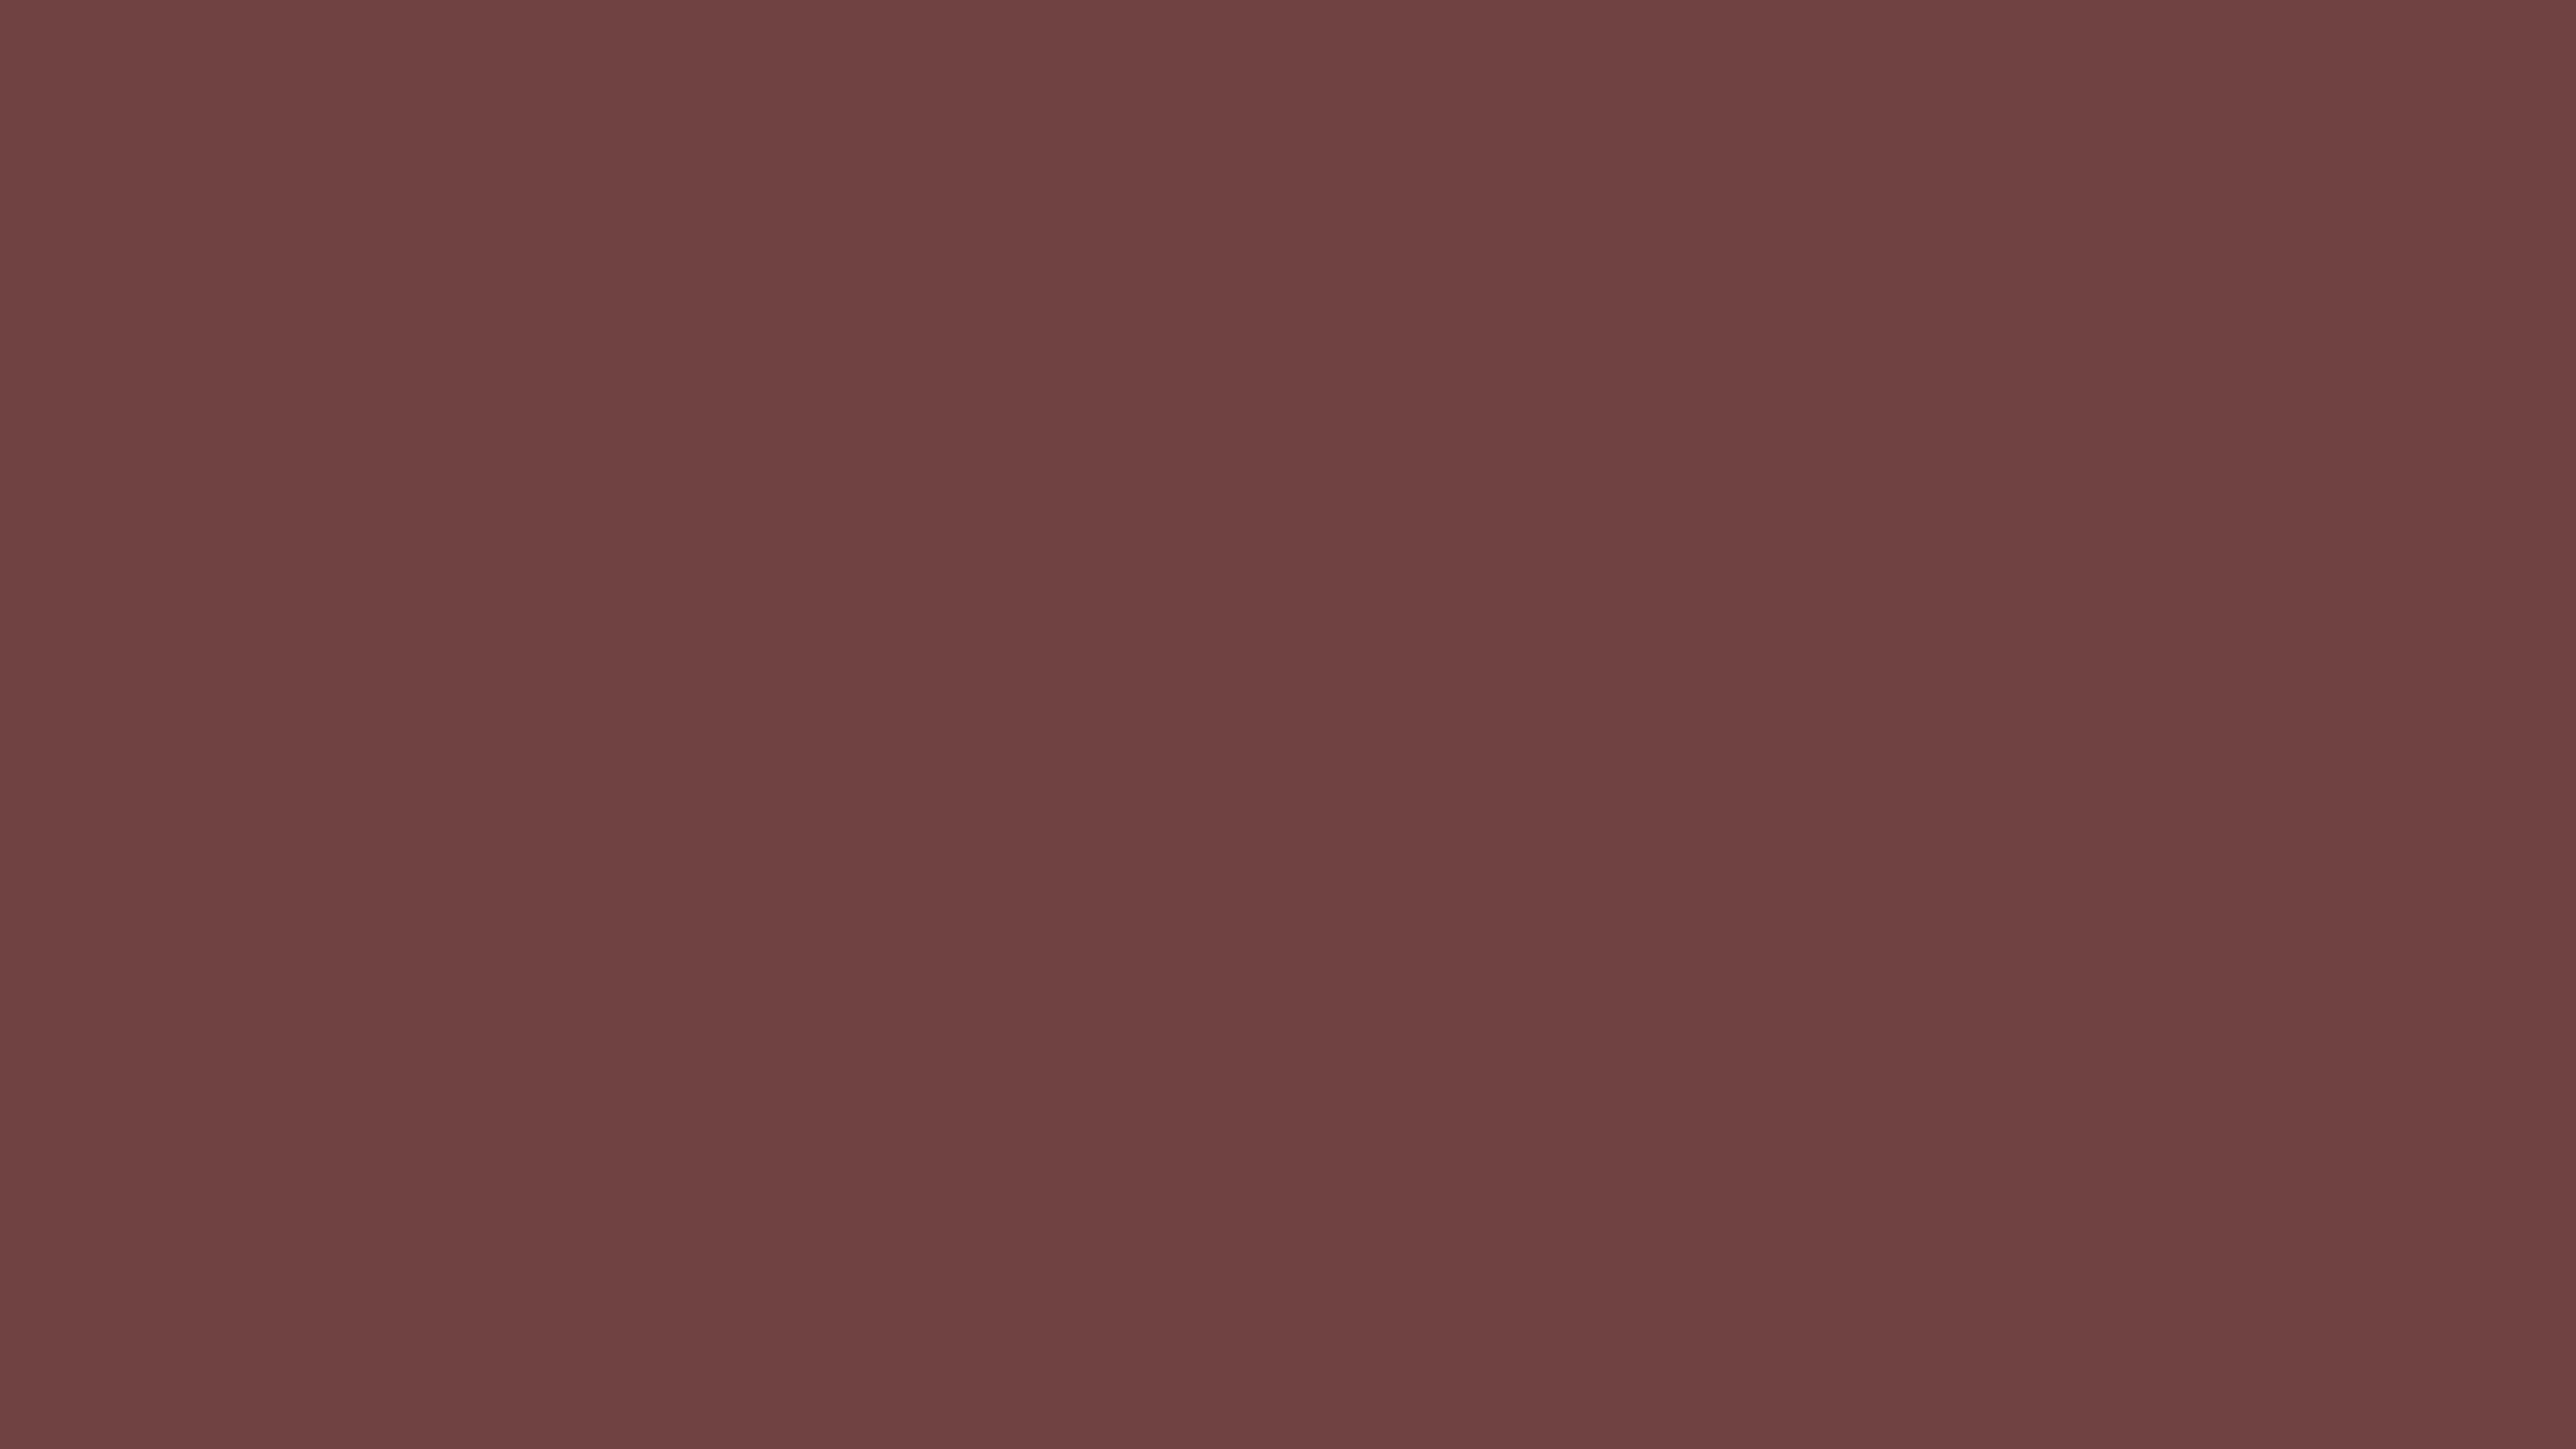 5120x2880 Deep Coffee Solid Color Background